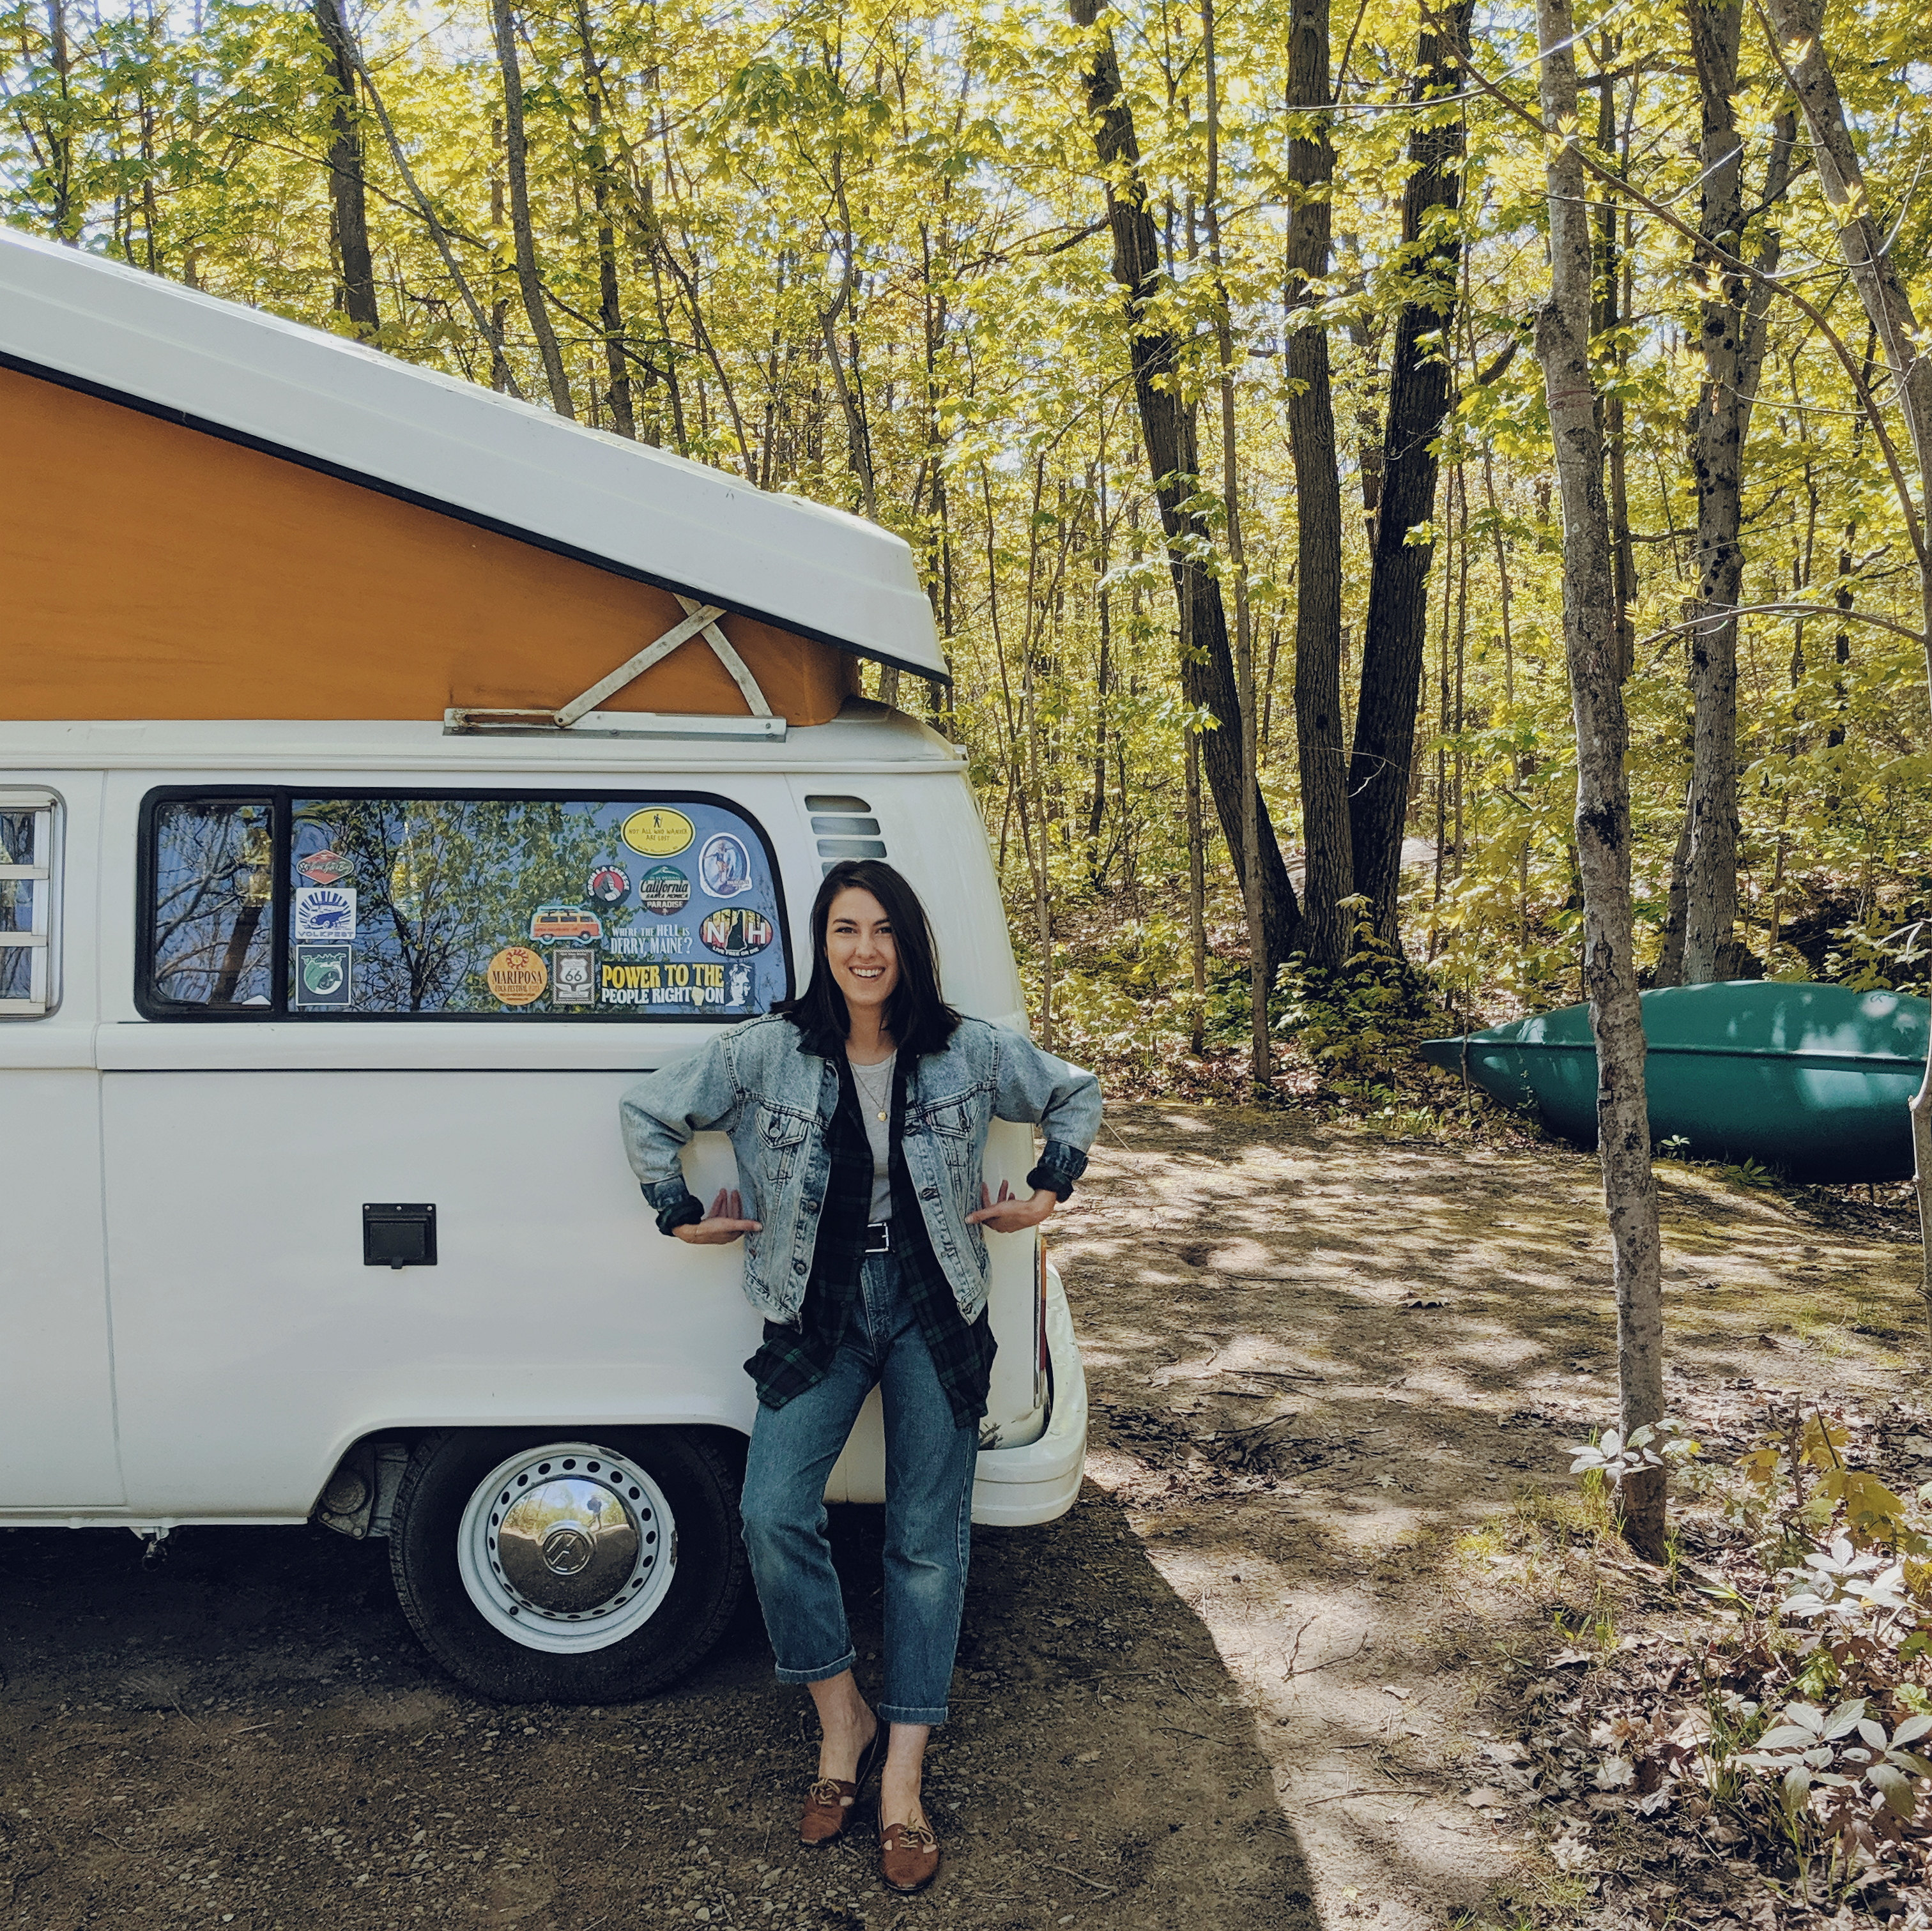 Ethical clothes for camping: the essentials